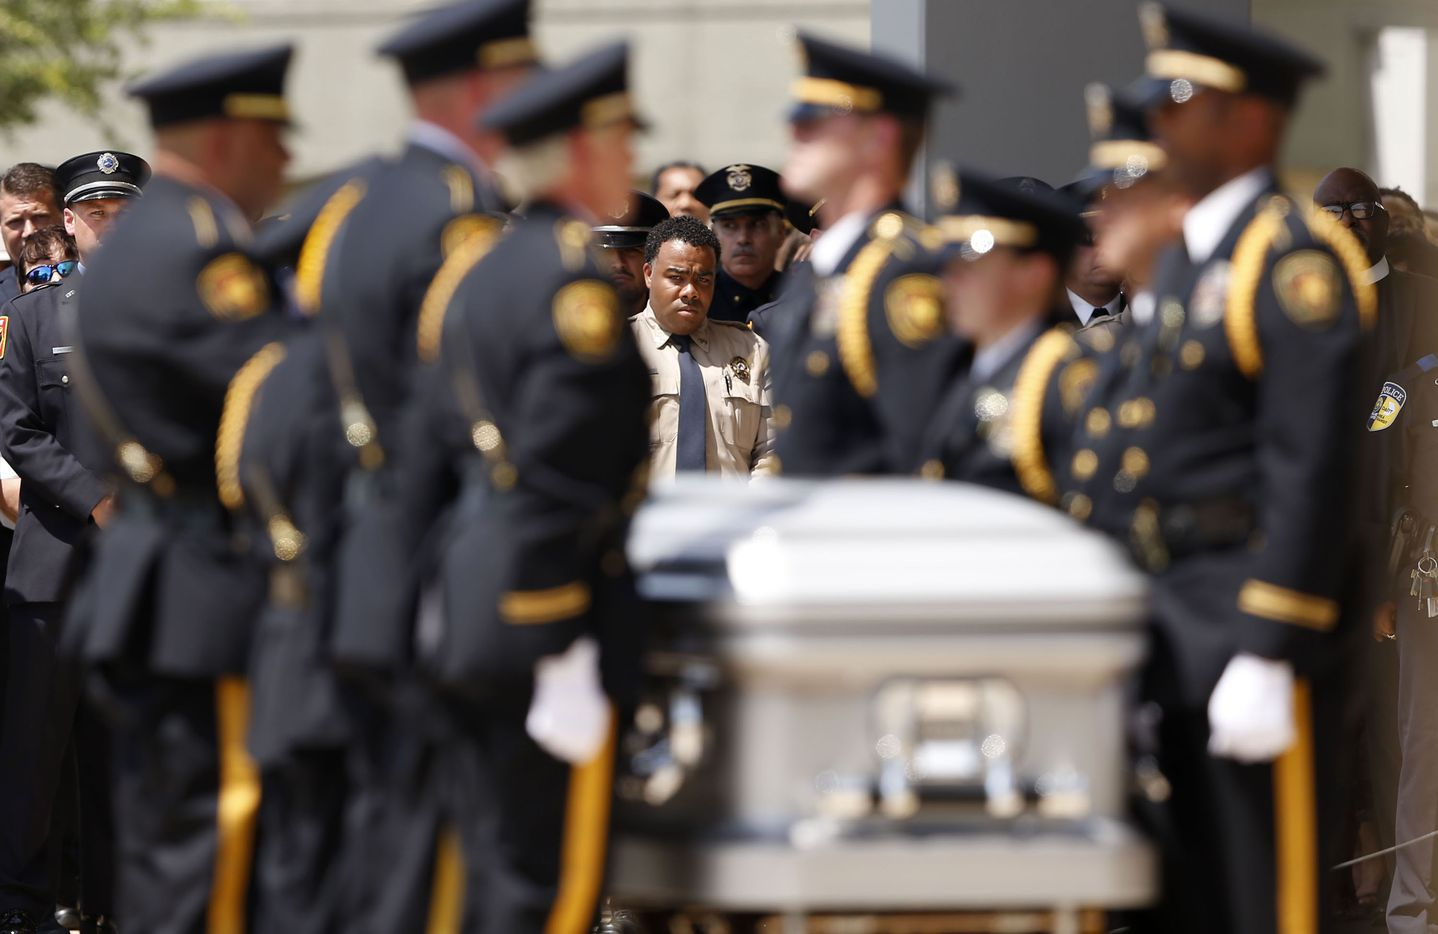 Arlington Honor Guard finish up folding the flag as officers watch during a memorial service for DART Officer Brent Thompson at The Potter's House in Dallas on Wednesday, July 13, 2016. Thompson was one of five officers killed last week when a gunman opened fire during a Black Lives Matter rally in downtown Dallas.